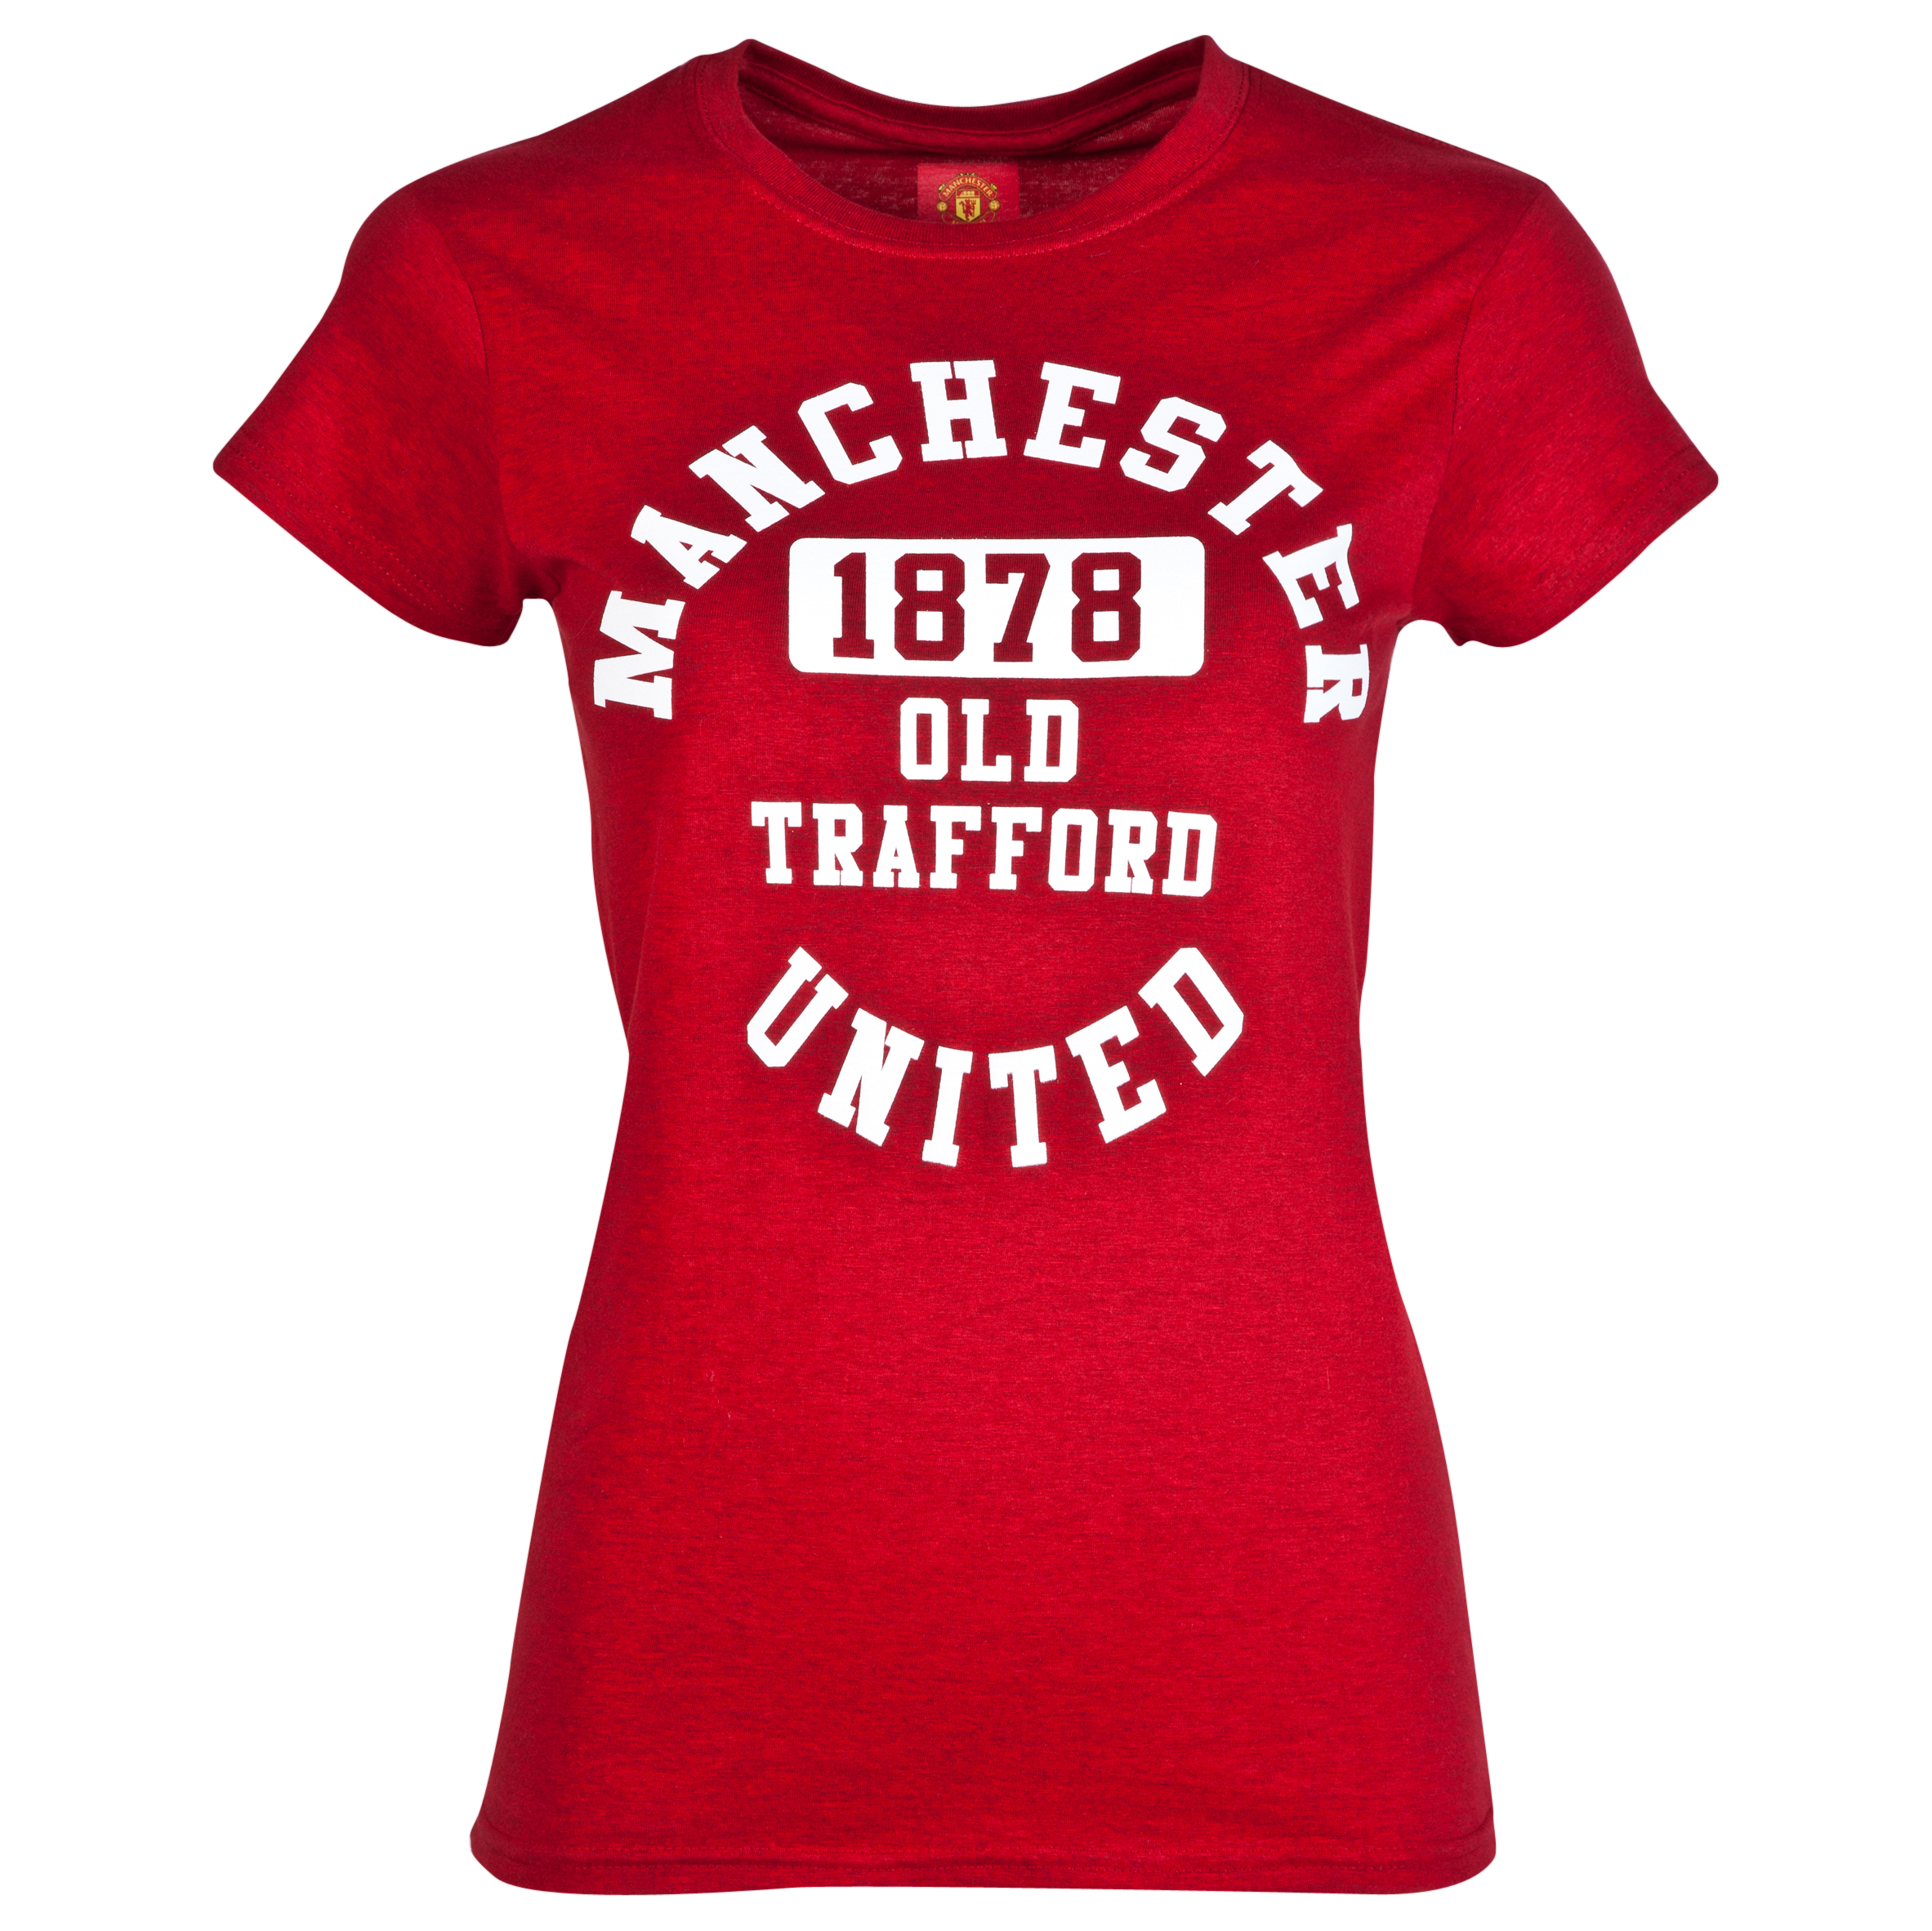 Manchester United Old Trafford T-Shirt - Womens Red